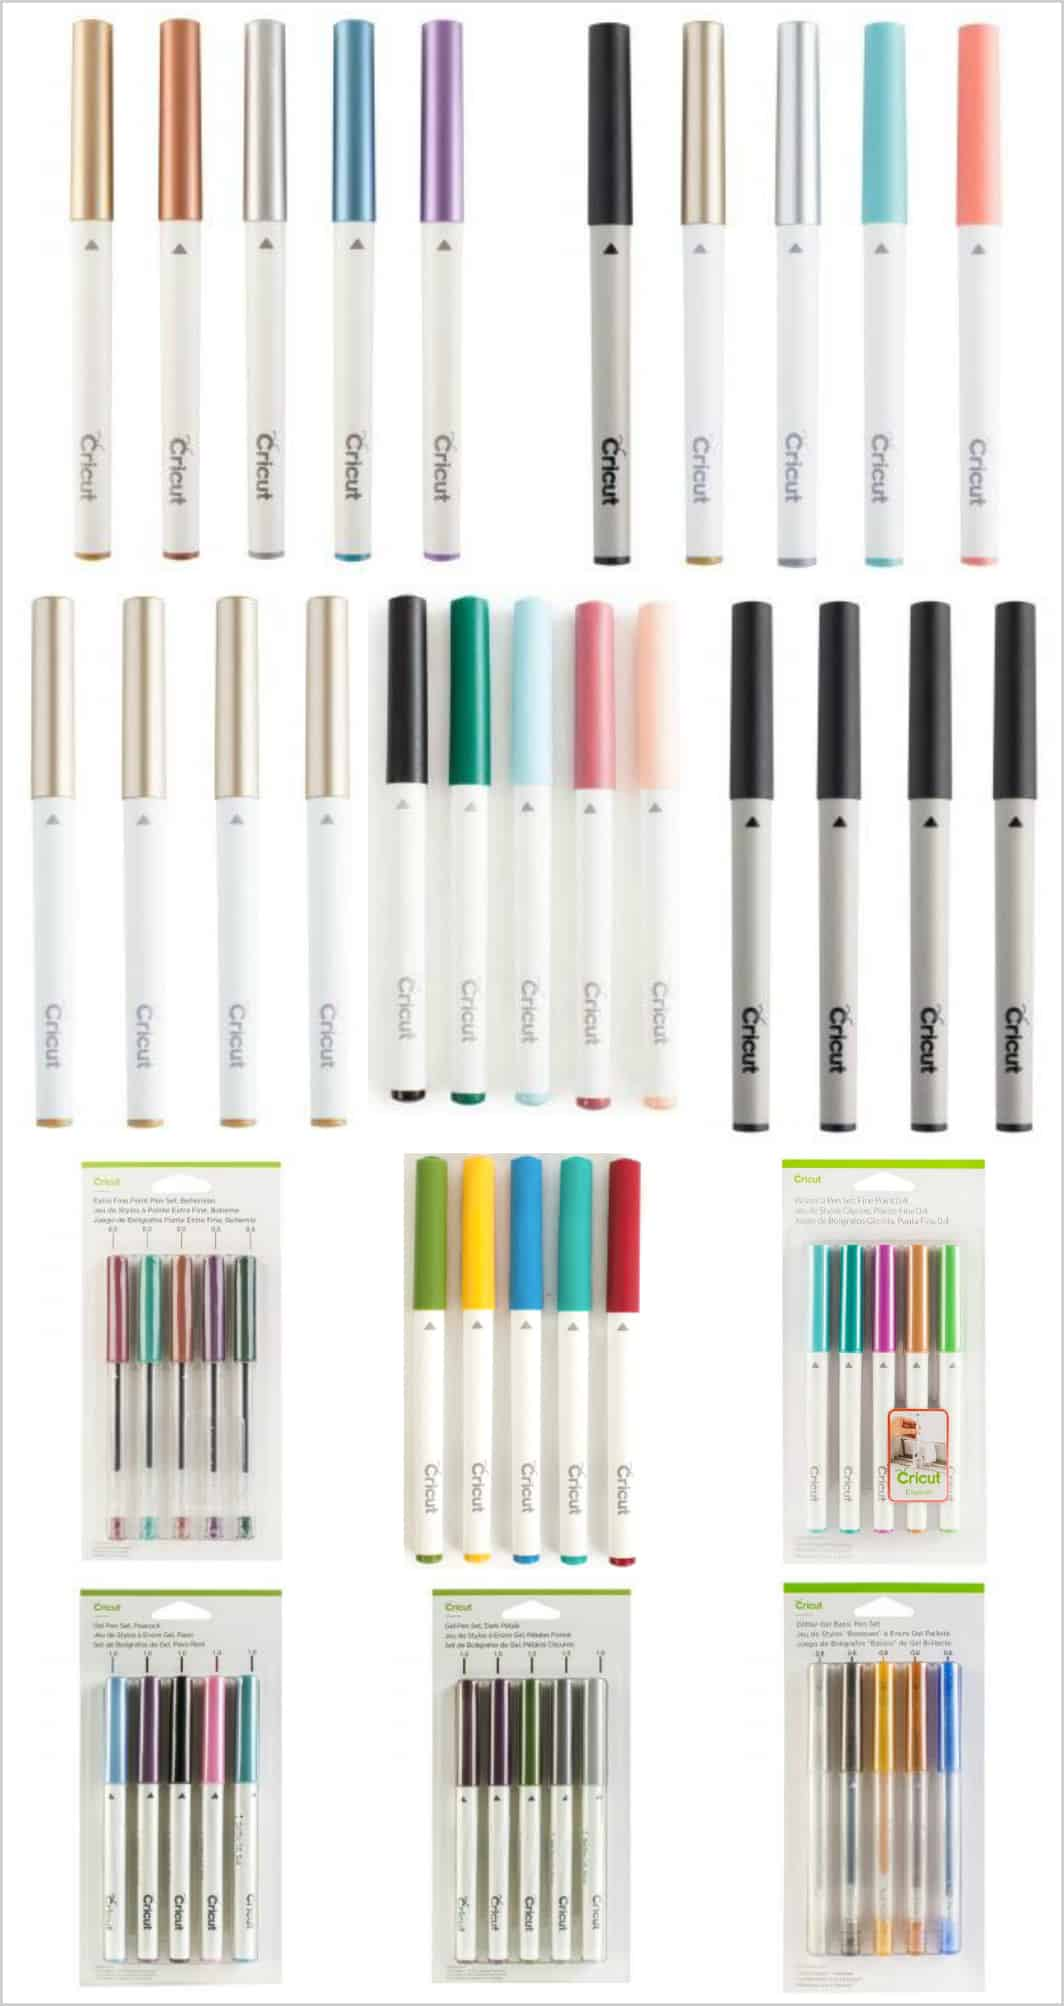 Variety of Cricut pens to use with the machine